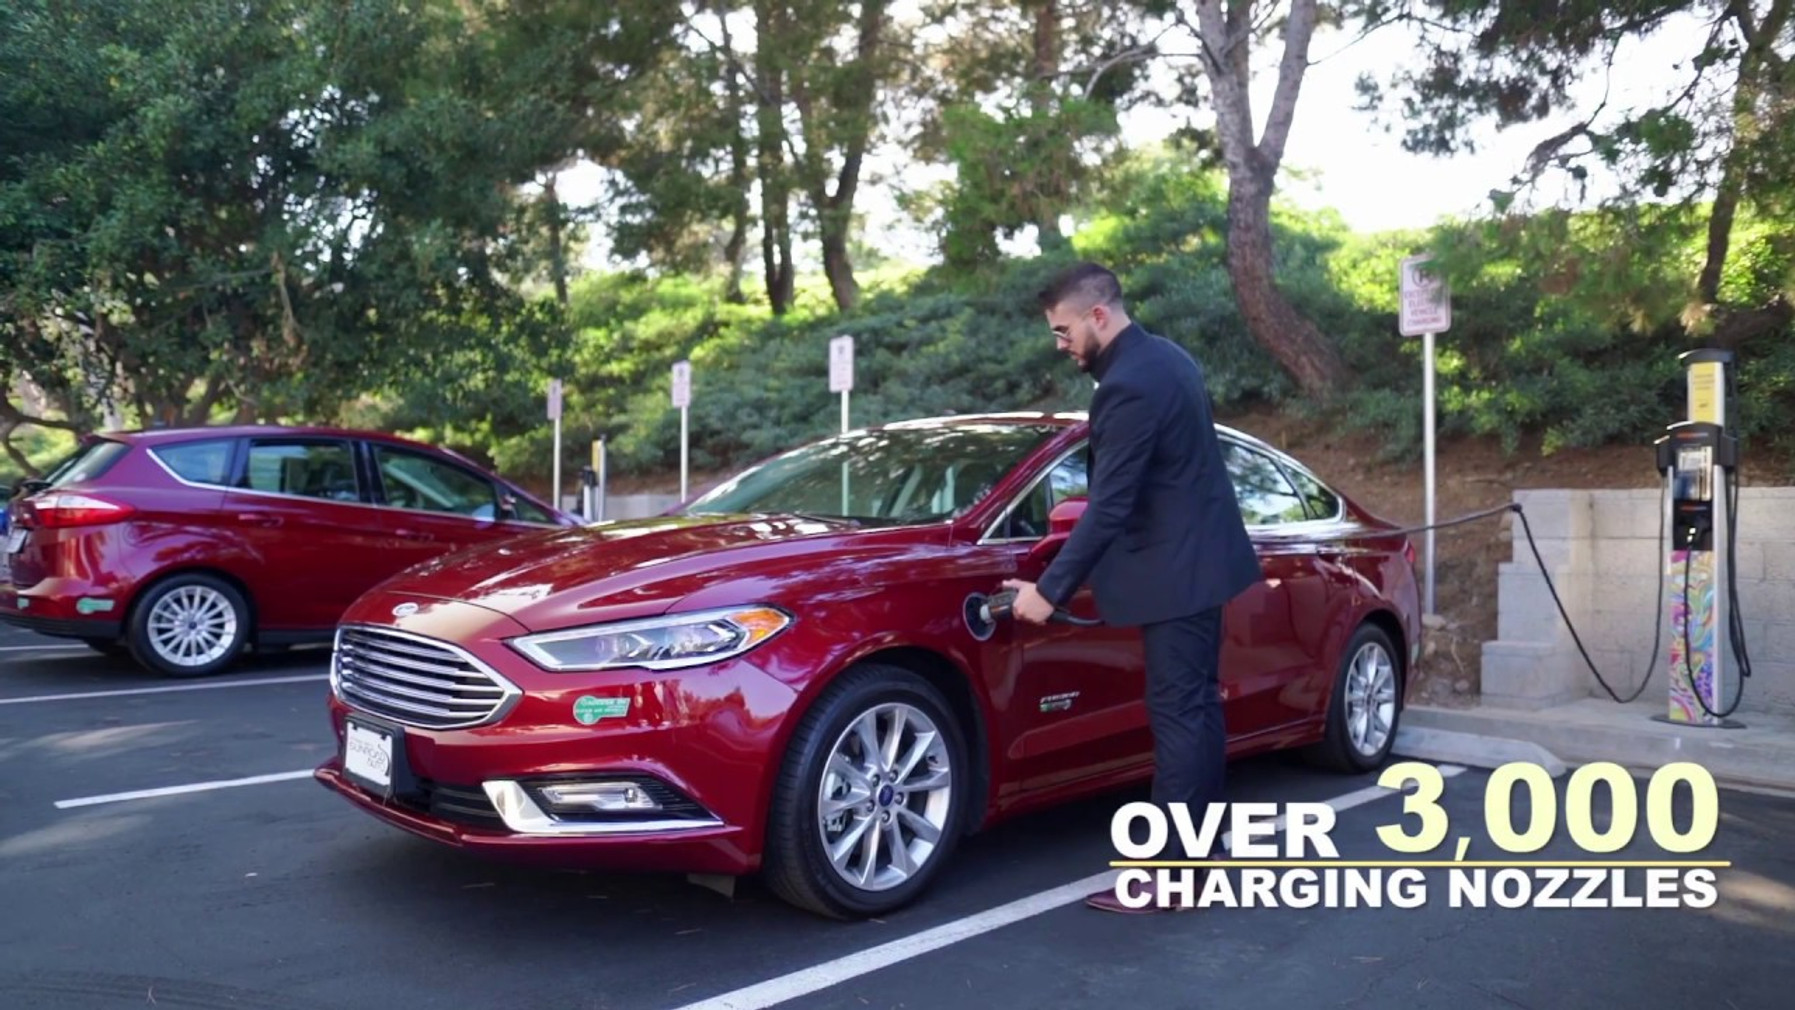 A video produced for San Diego Gas & Electric to explain their Power Your Drive Electric Vehicle charging pilot program (Power Your Drive). It was highlighted on the companies website and used by the University of Stanford as part of an explanatory paper.